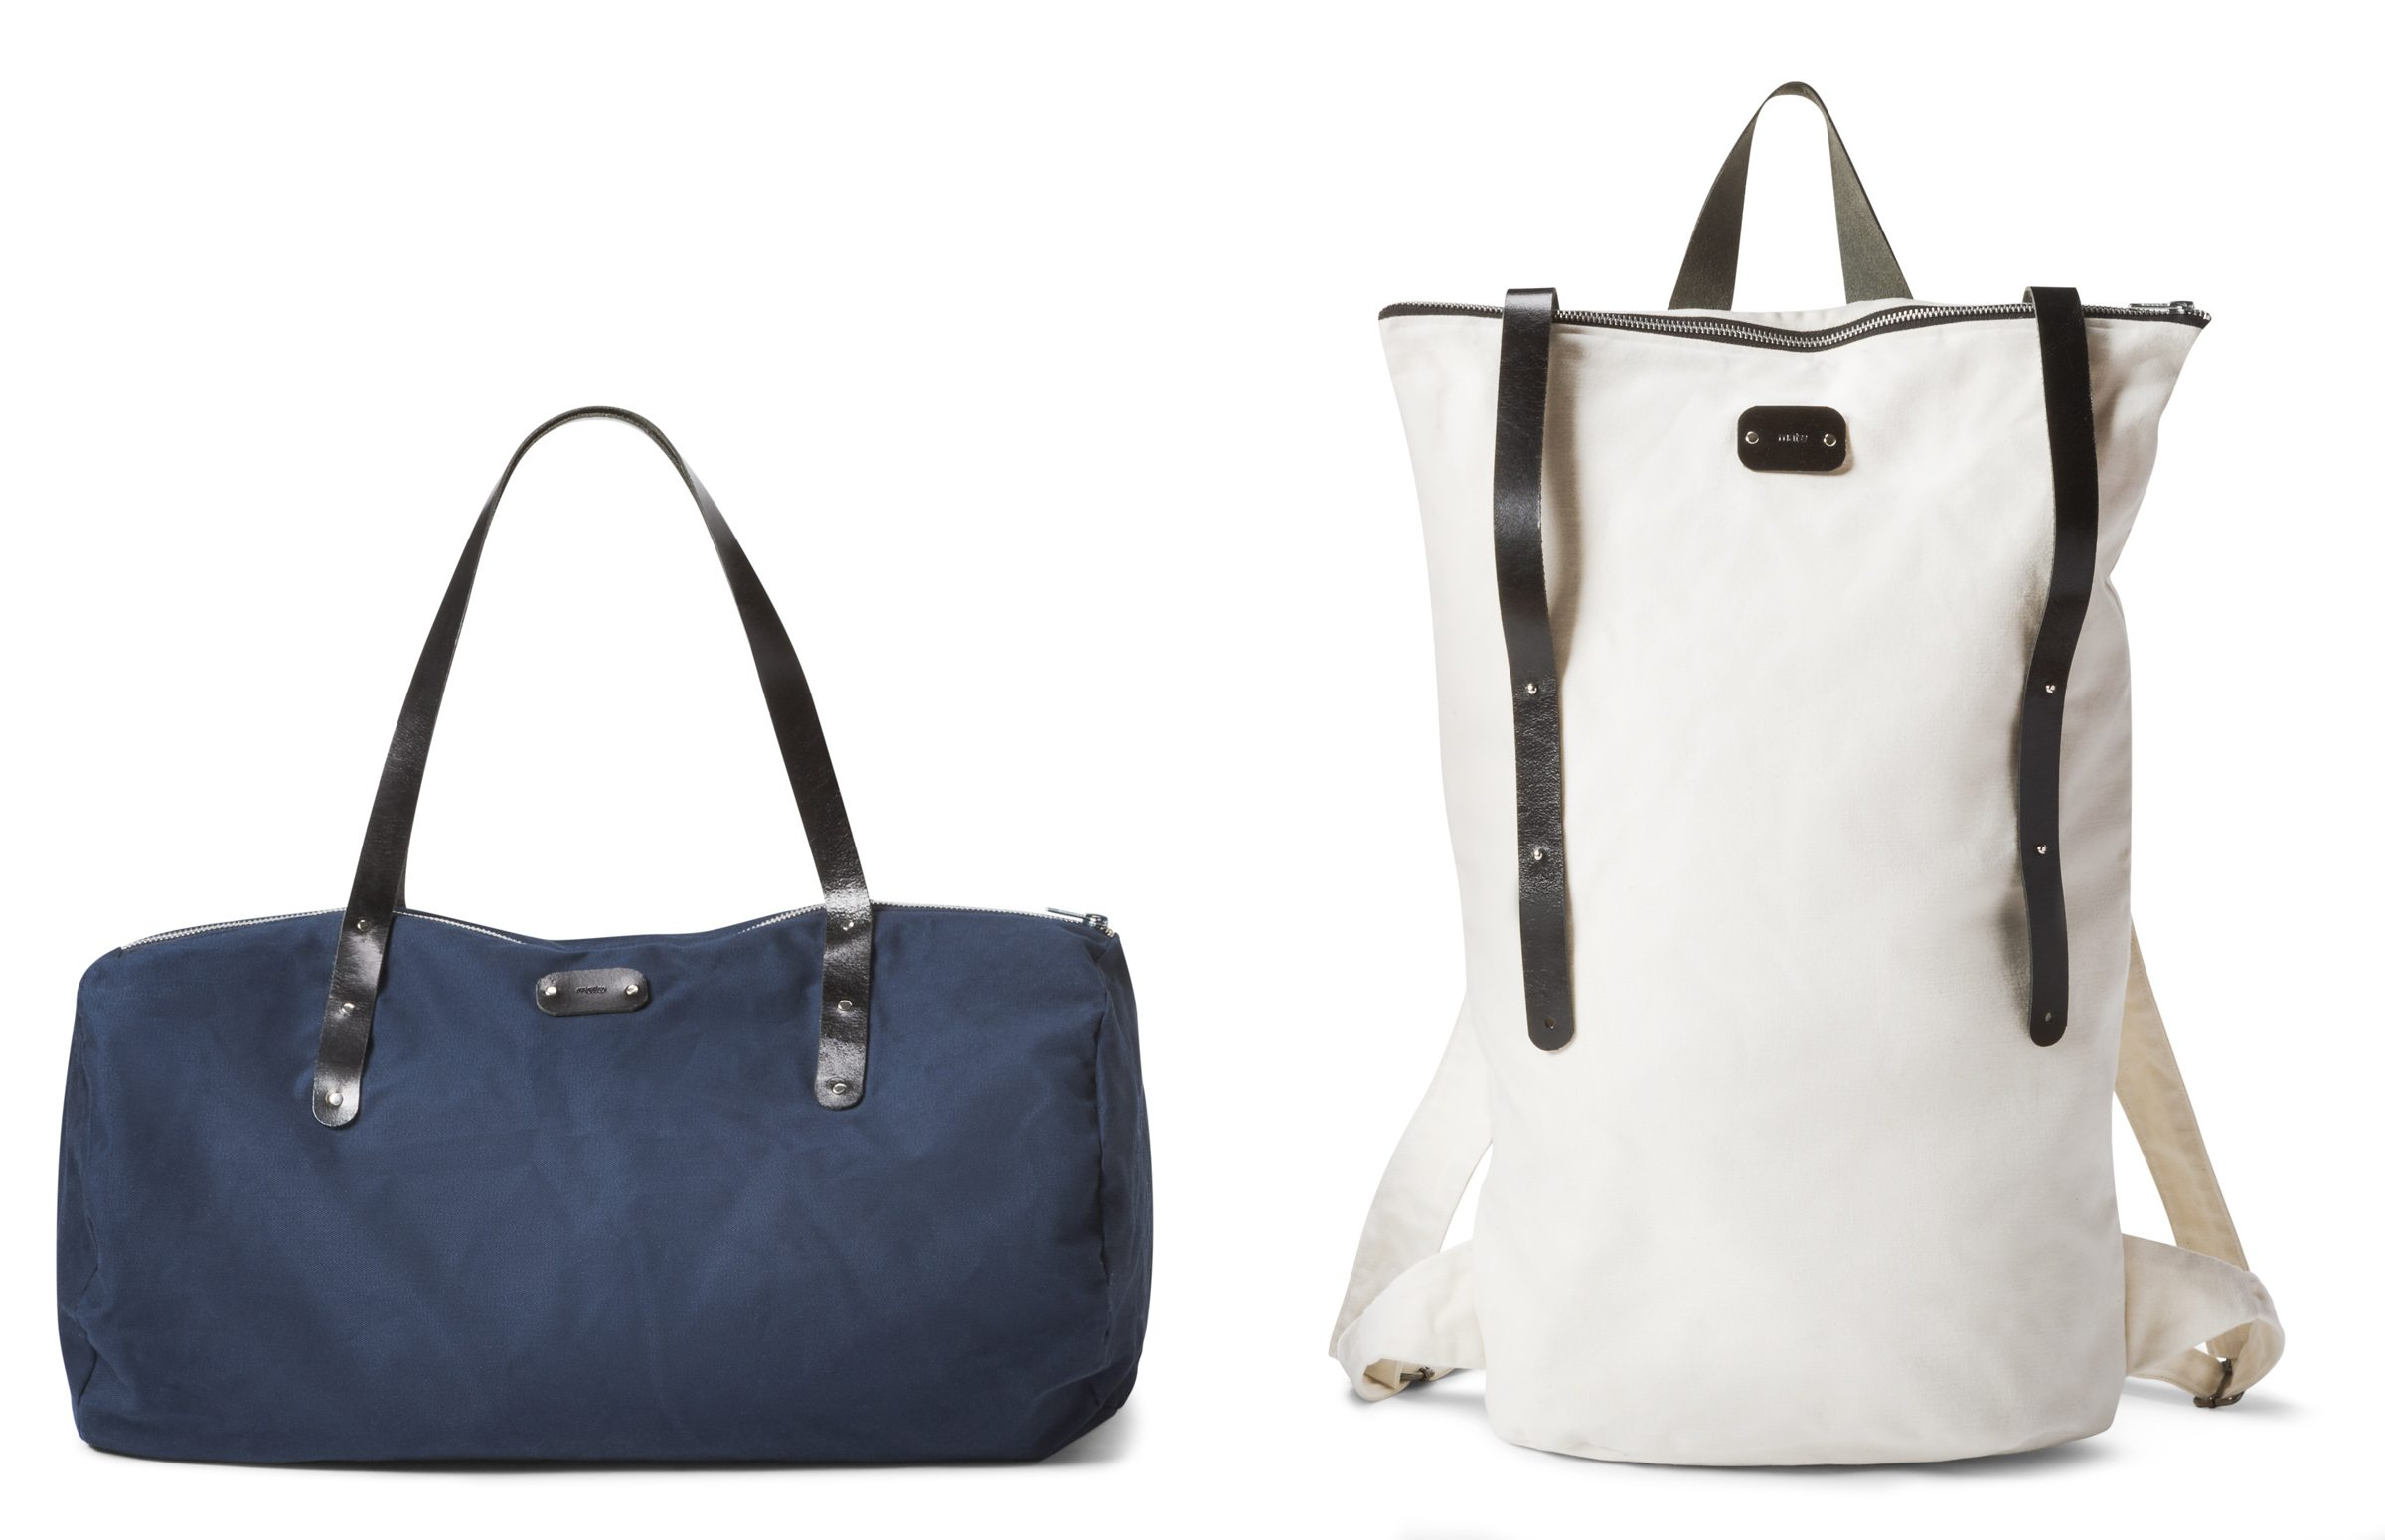 Backpack $215 and sports bag $160 by Marie-Anne Miljours, MATU